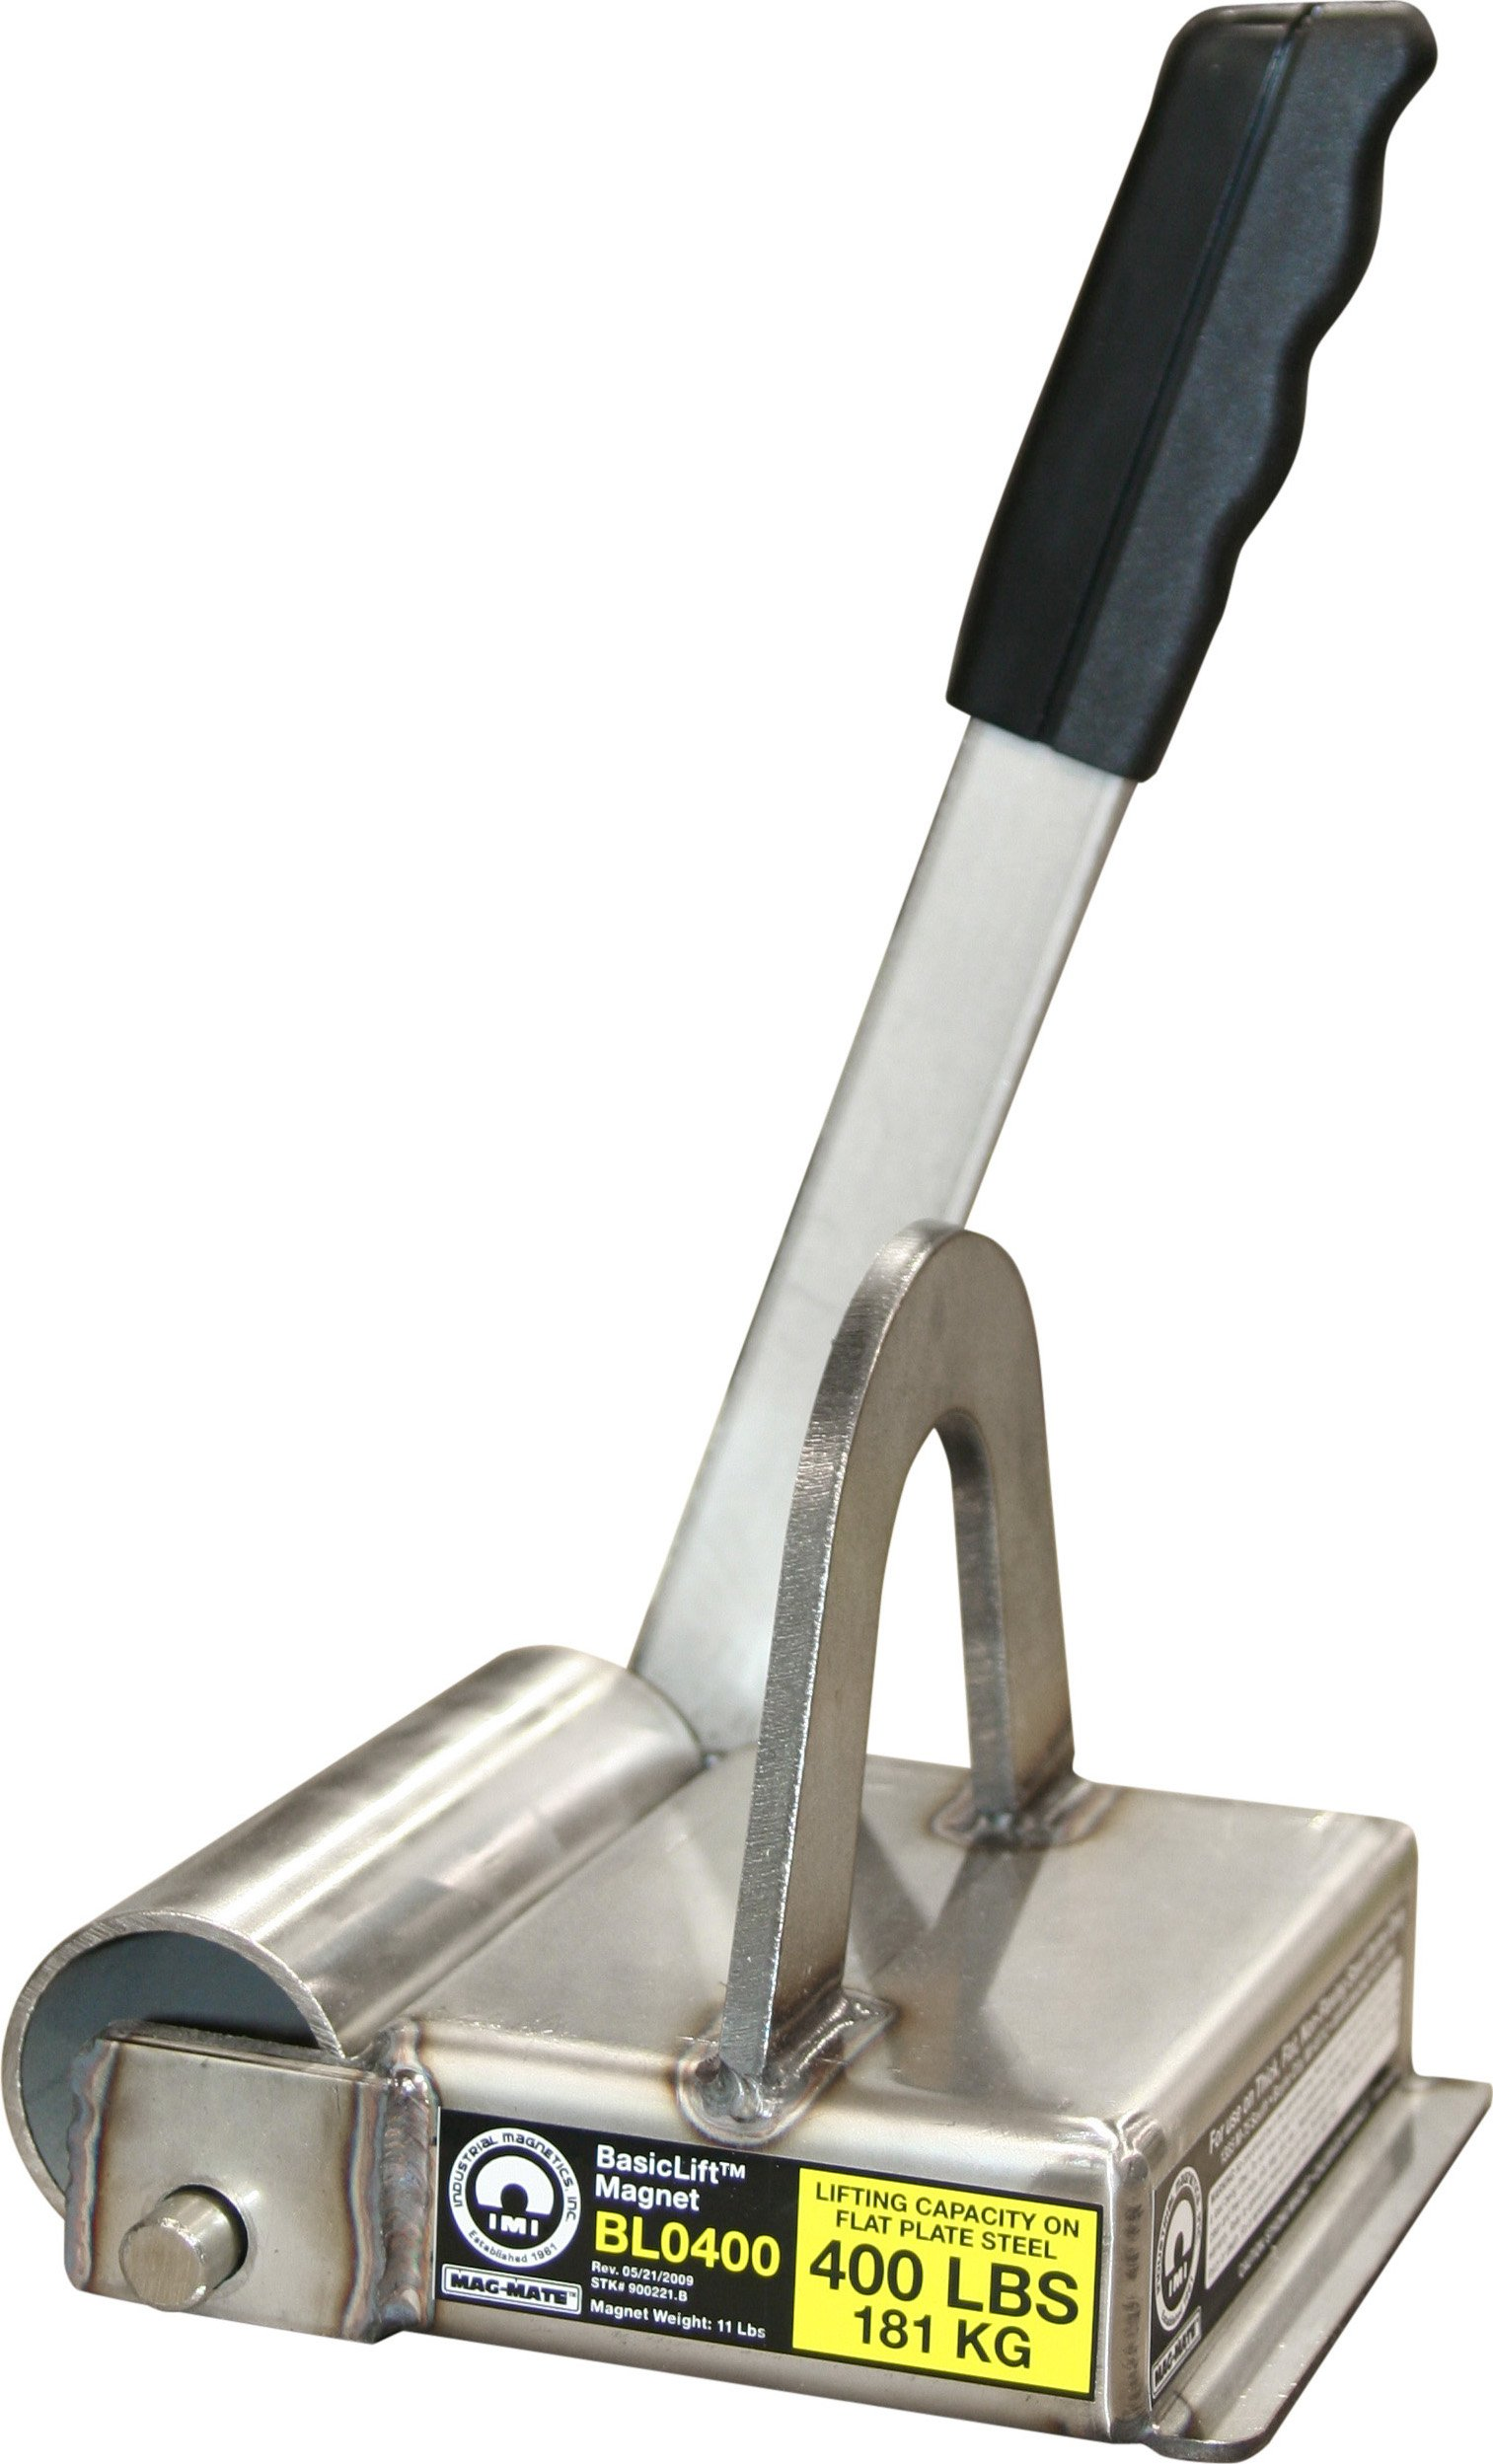 MAG-MATE BL0400 BasicLift Lift Magnet with 400 lb Capacity